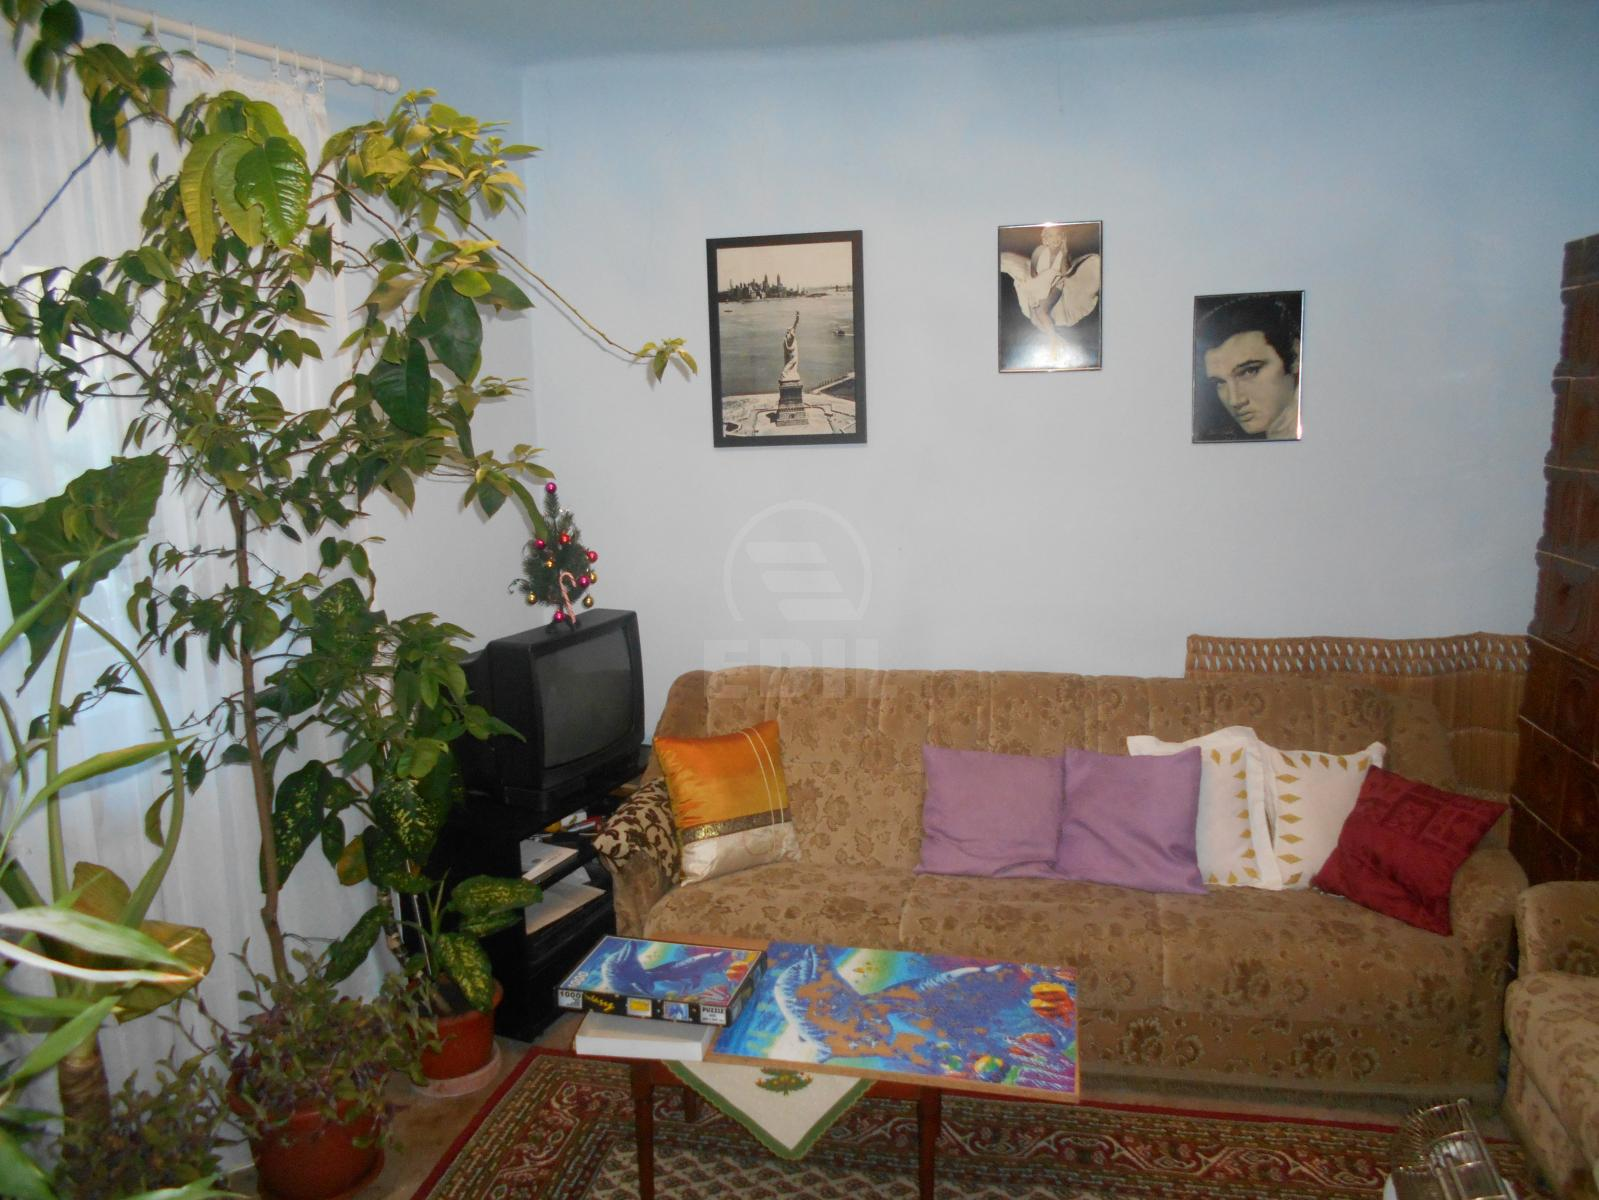 House for sale 3 rooms, CACJ271846-9